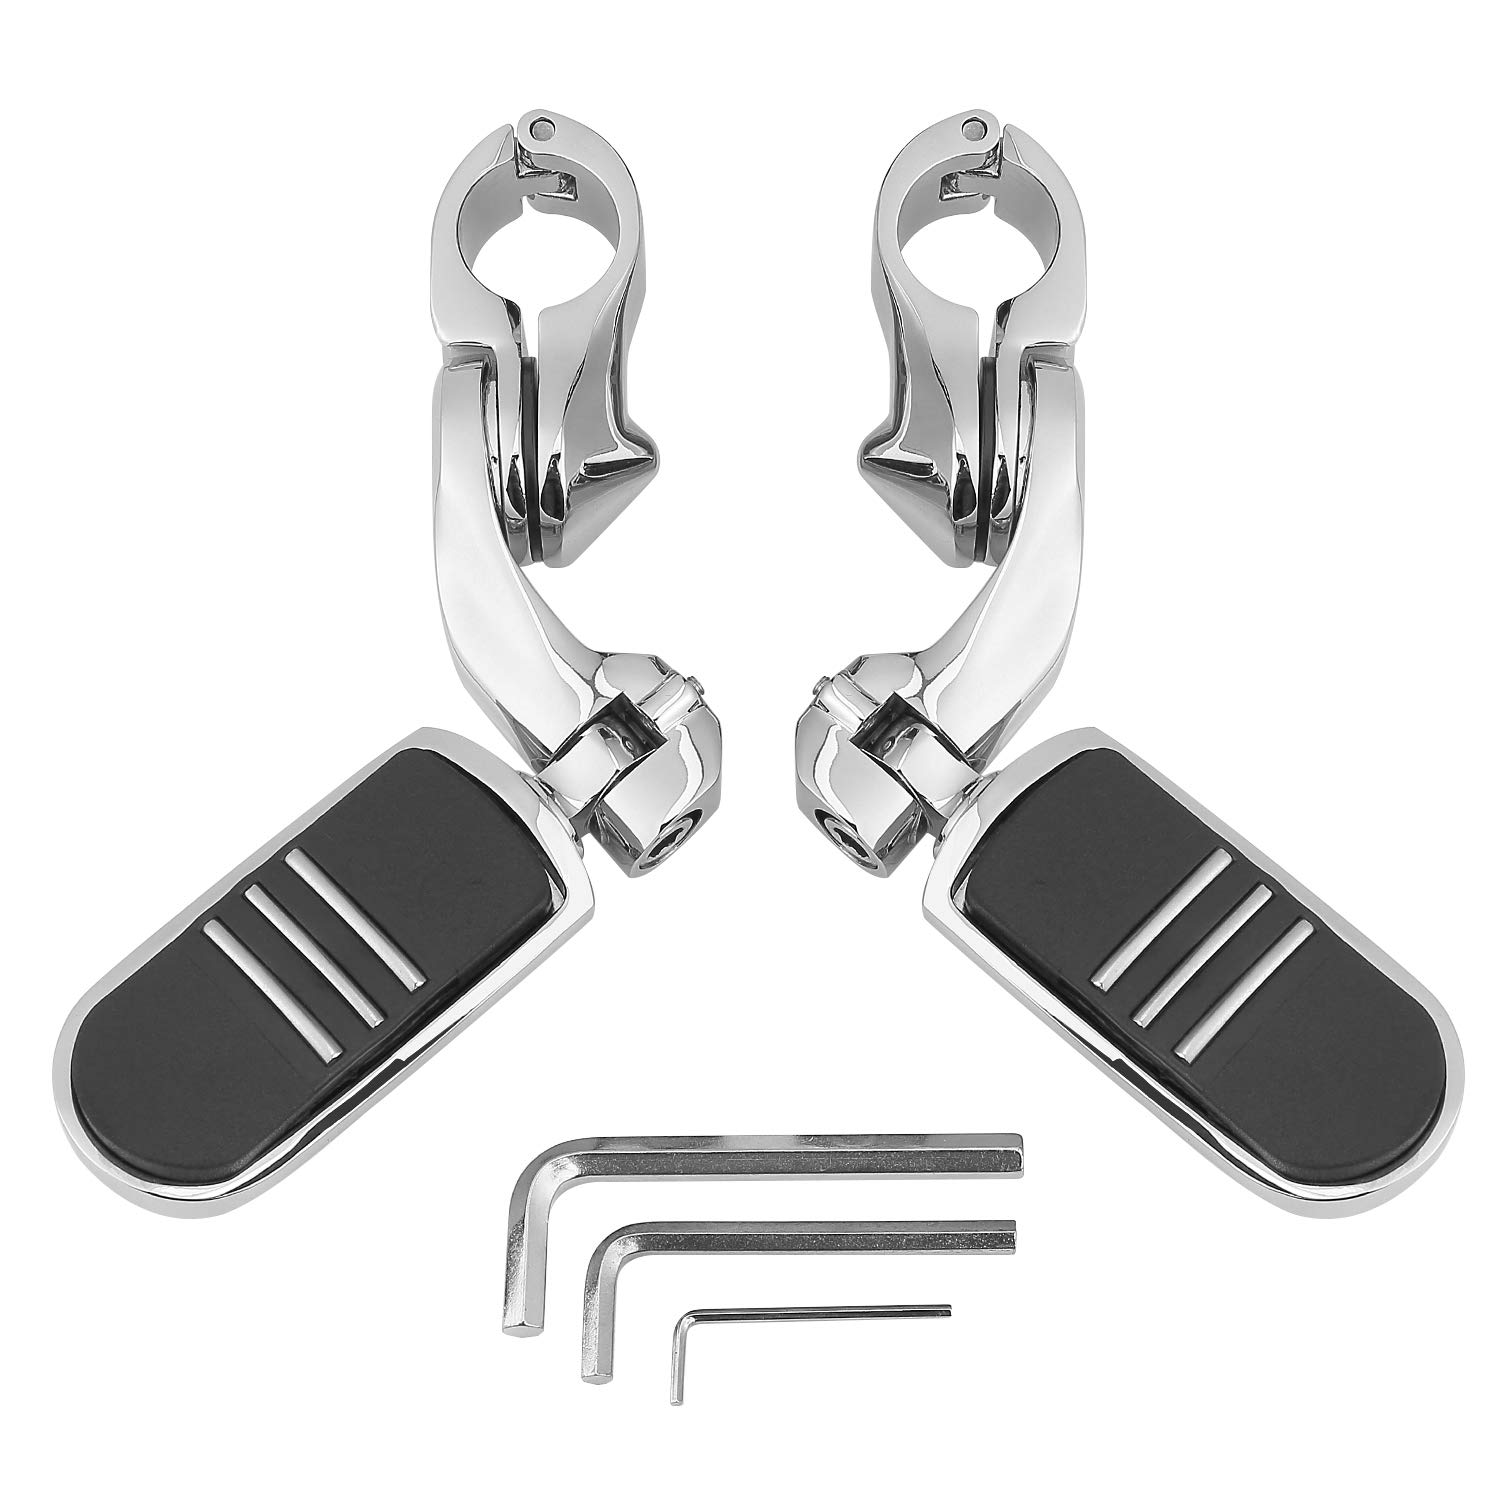 Highway Pegs Foot Pegs for Motorcycles 1.25//32mm Engine Guards Crash Bar Adjustable Foot Pegs for Street Touring Softail Dyna Sportster Highway Pegs